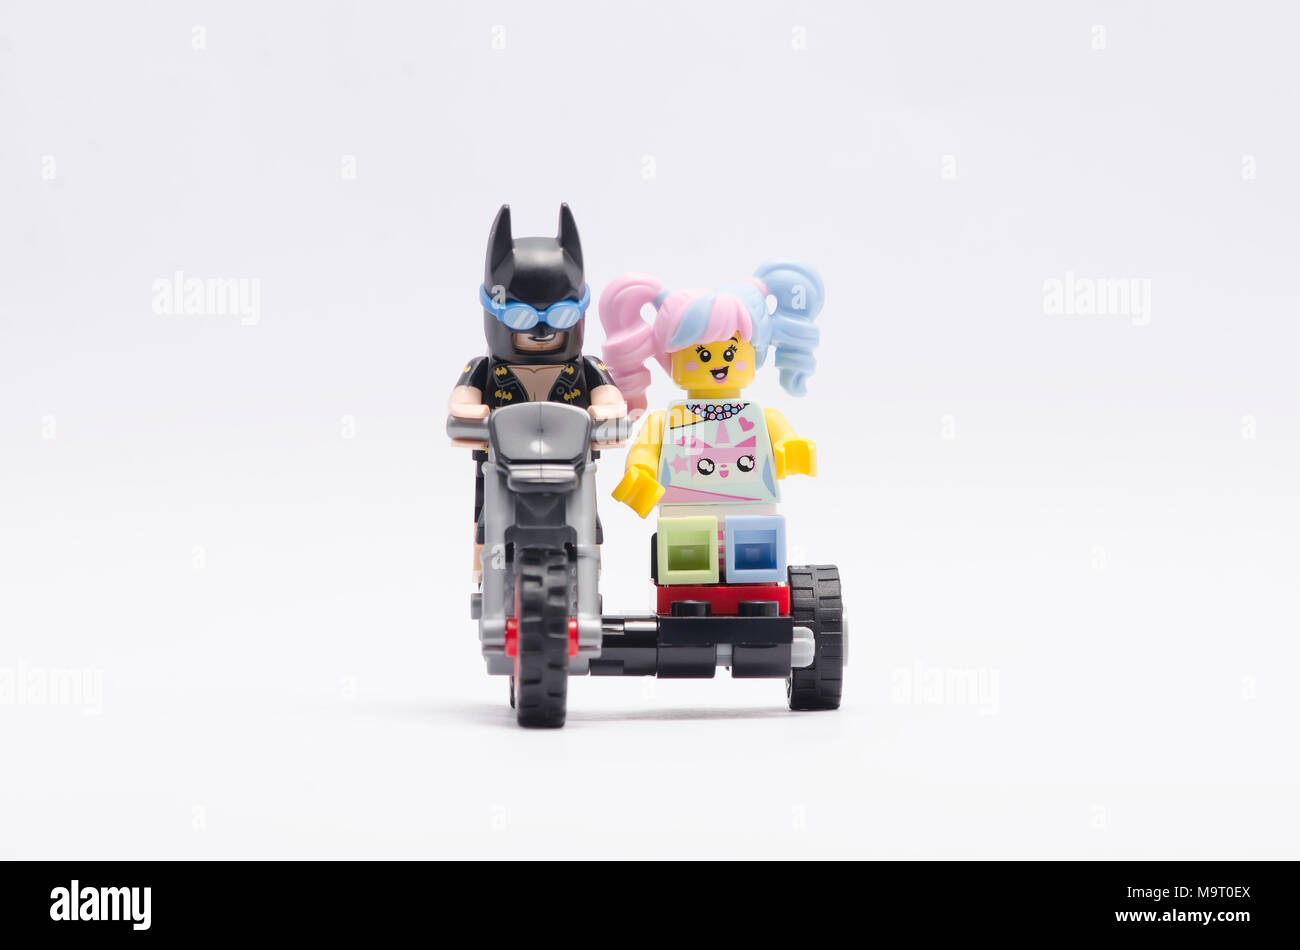 lego batman riding dirt bike with n-pop girl . isolated on white background. - Stock Image